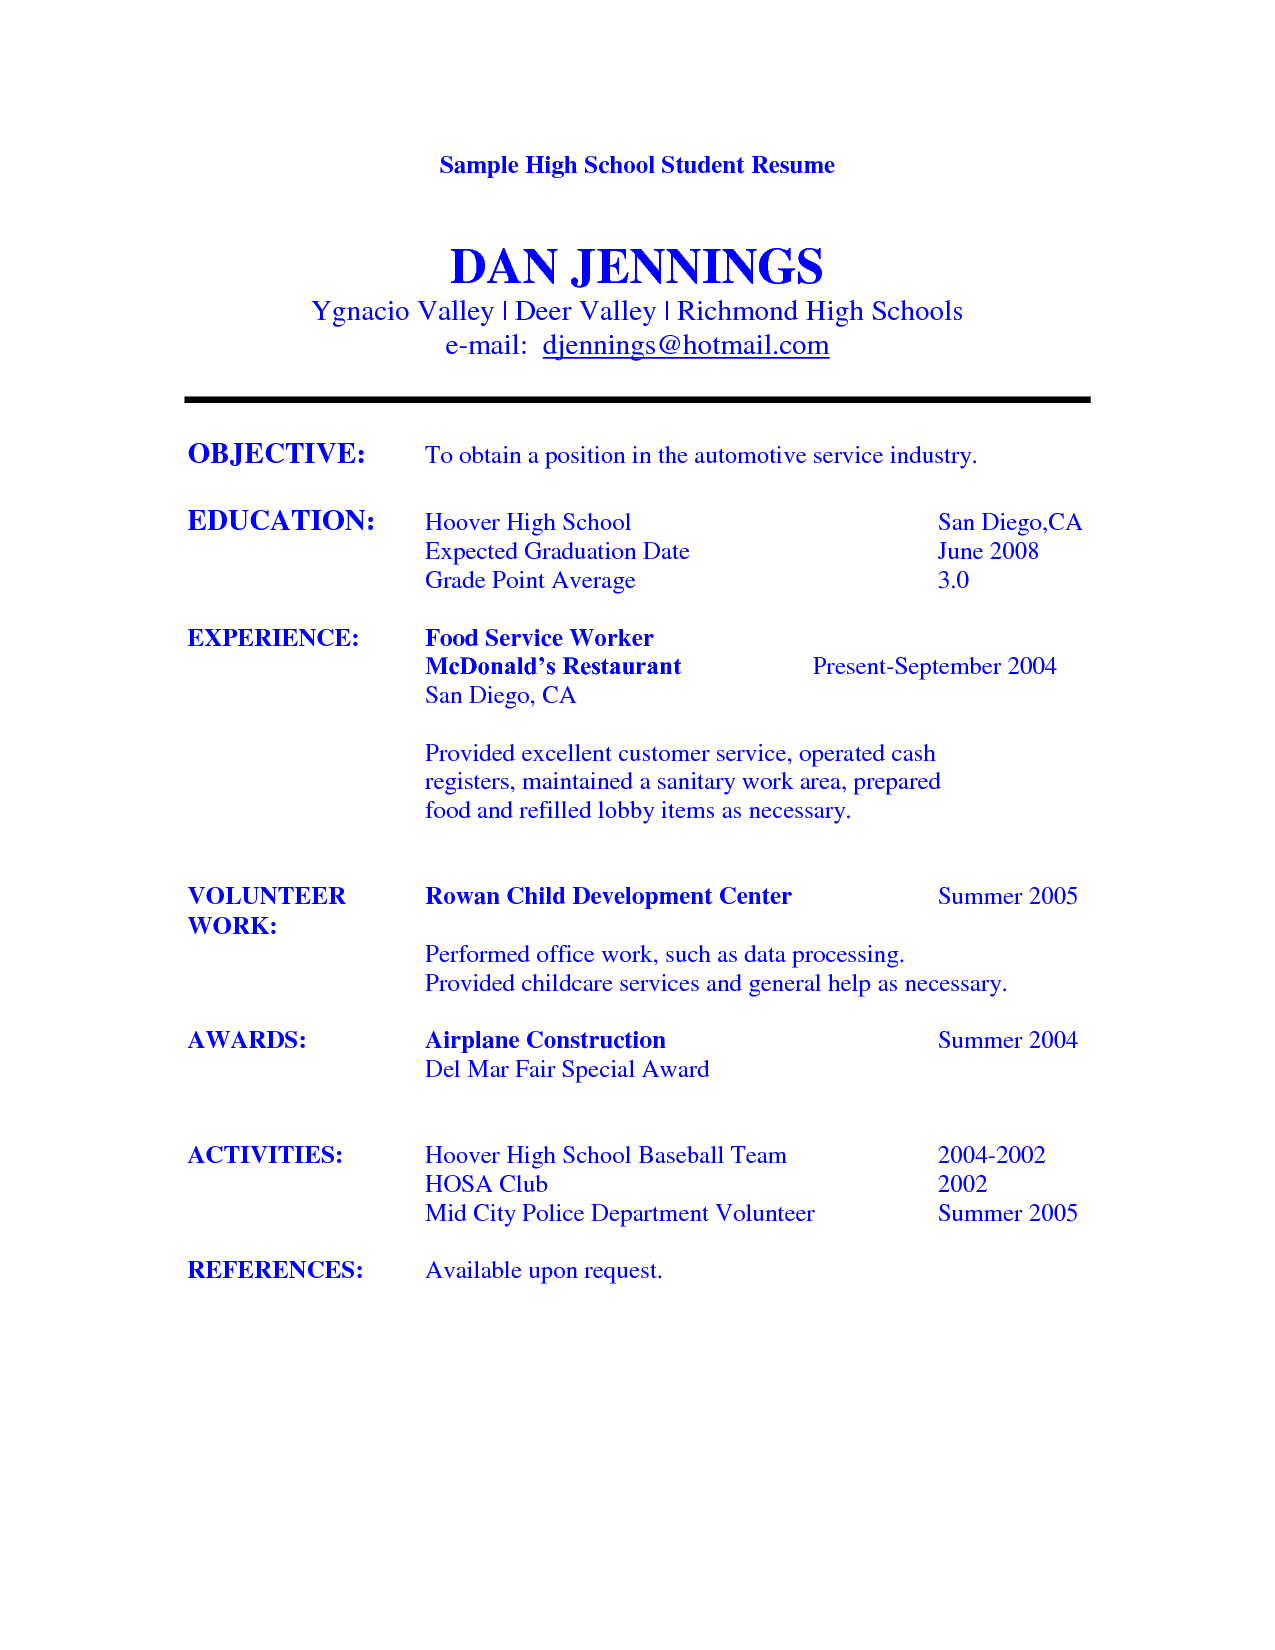 Student Resume Resume Example For High School Student Sample Resumes  Httpwww